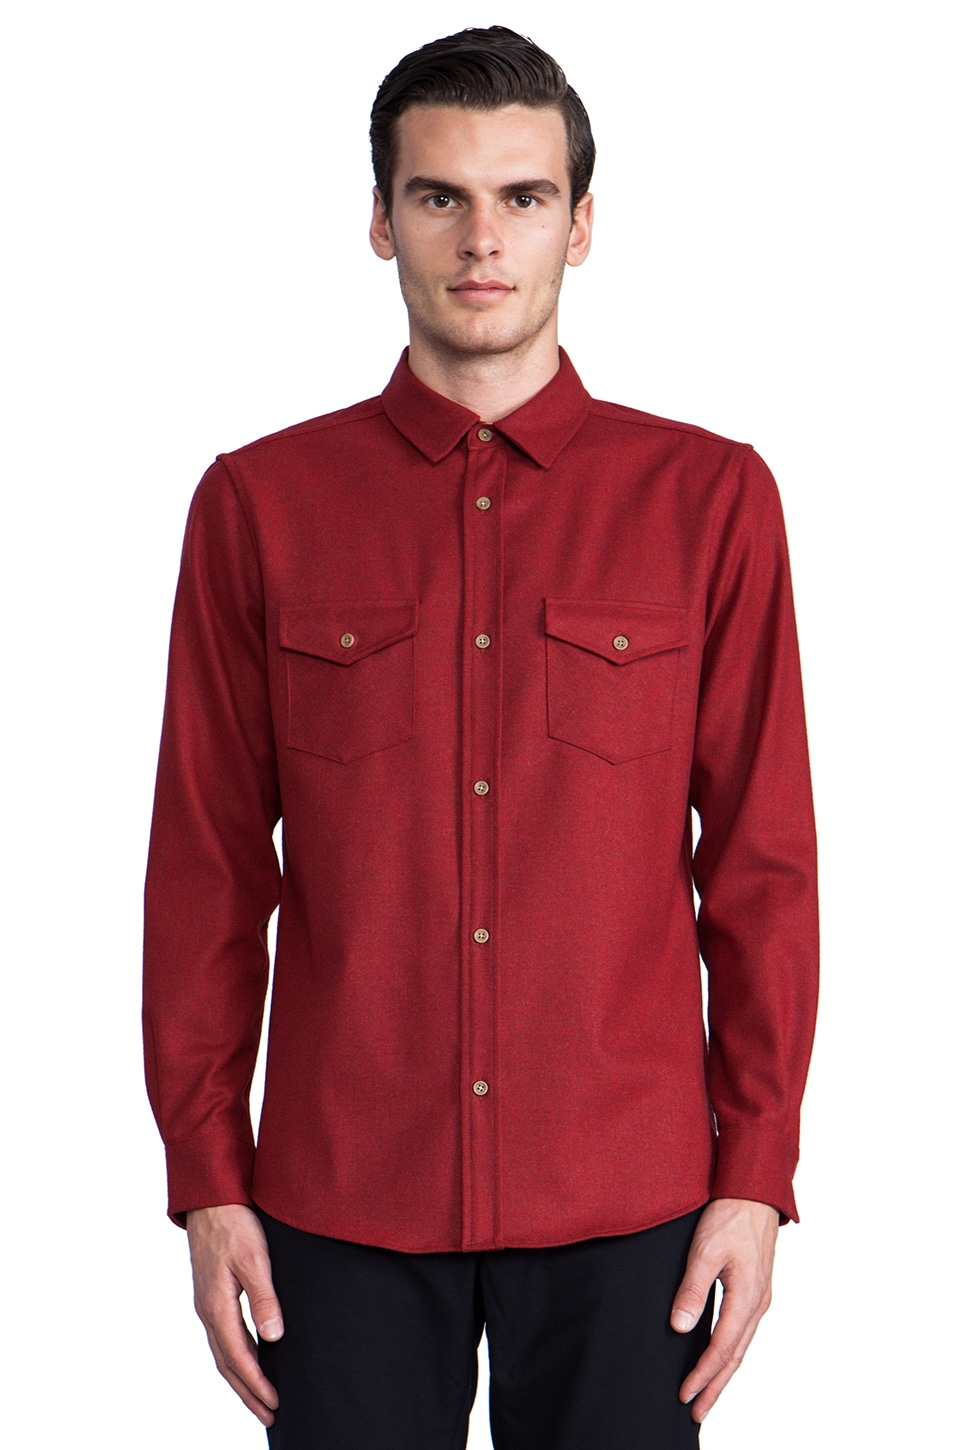 The Portland Collection by Pendleton Government Camp Shirt in Red Mix Umatilla